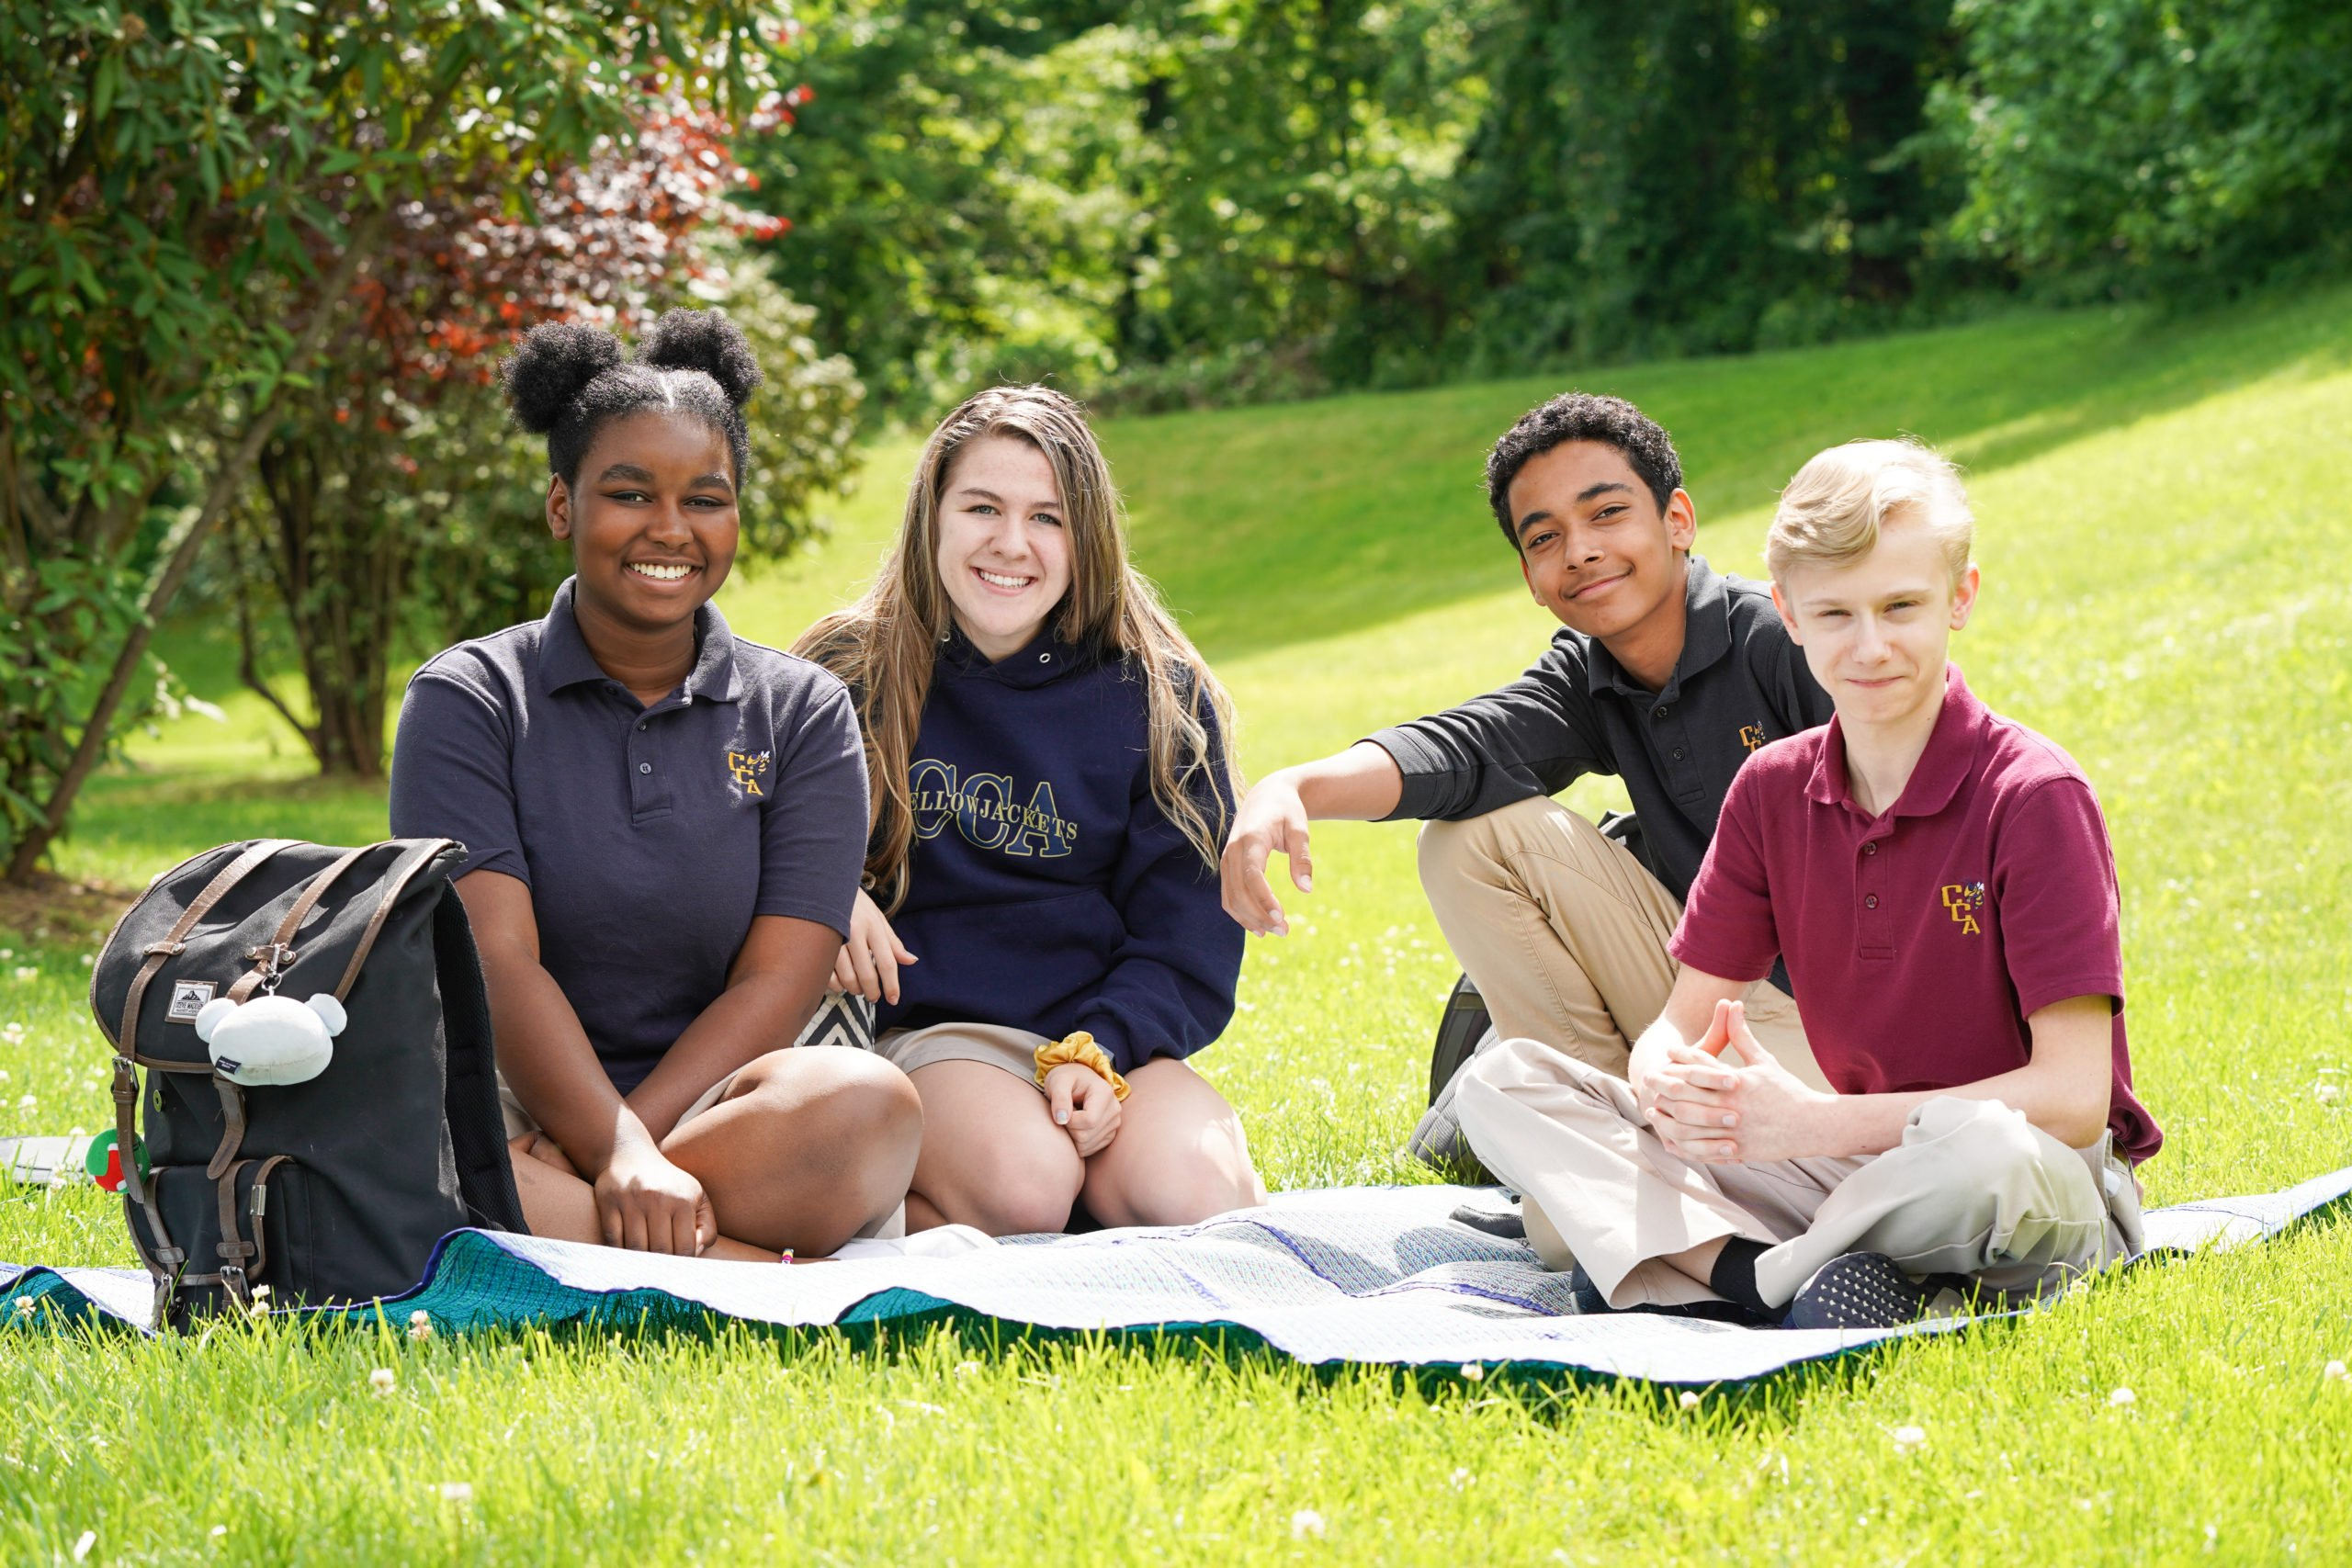 Chapelgate students enjoying a nice day out on the lawn